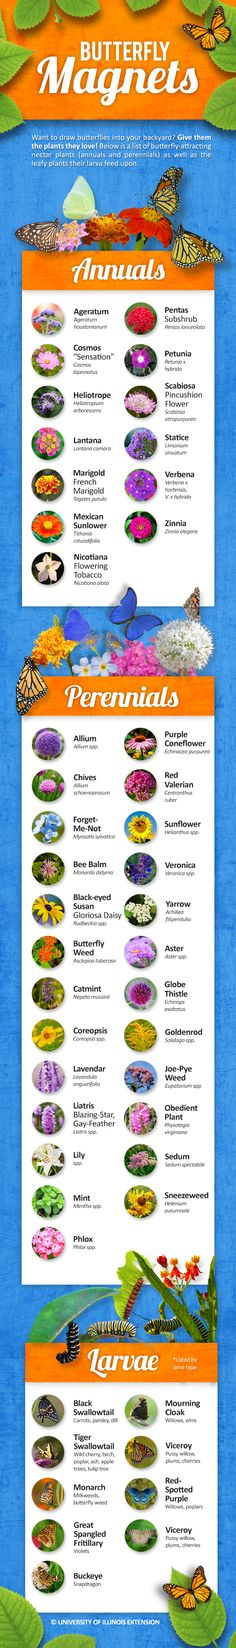 Want more butterflies in your yard? Plant the nectar plants they love! Here's a great list of butterfly-attracting annual and perennial plants — including those needed for butterfly larvae. #infographic #garden #gardening